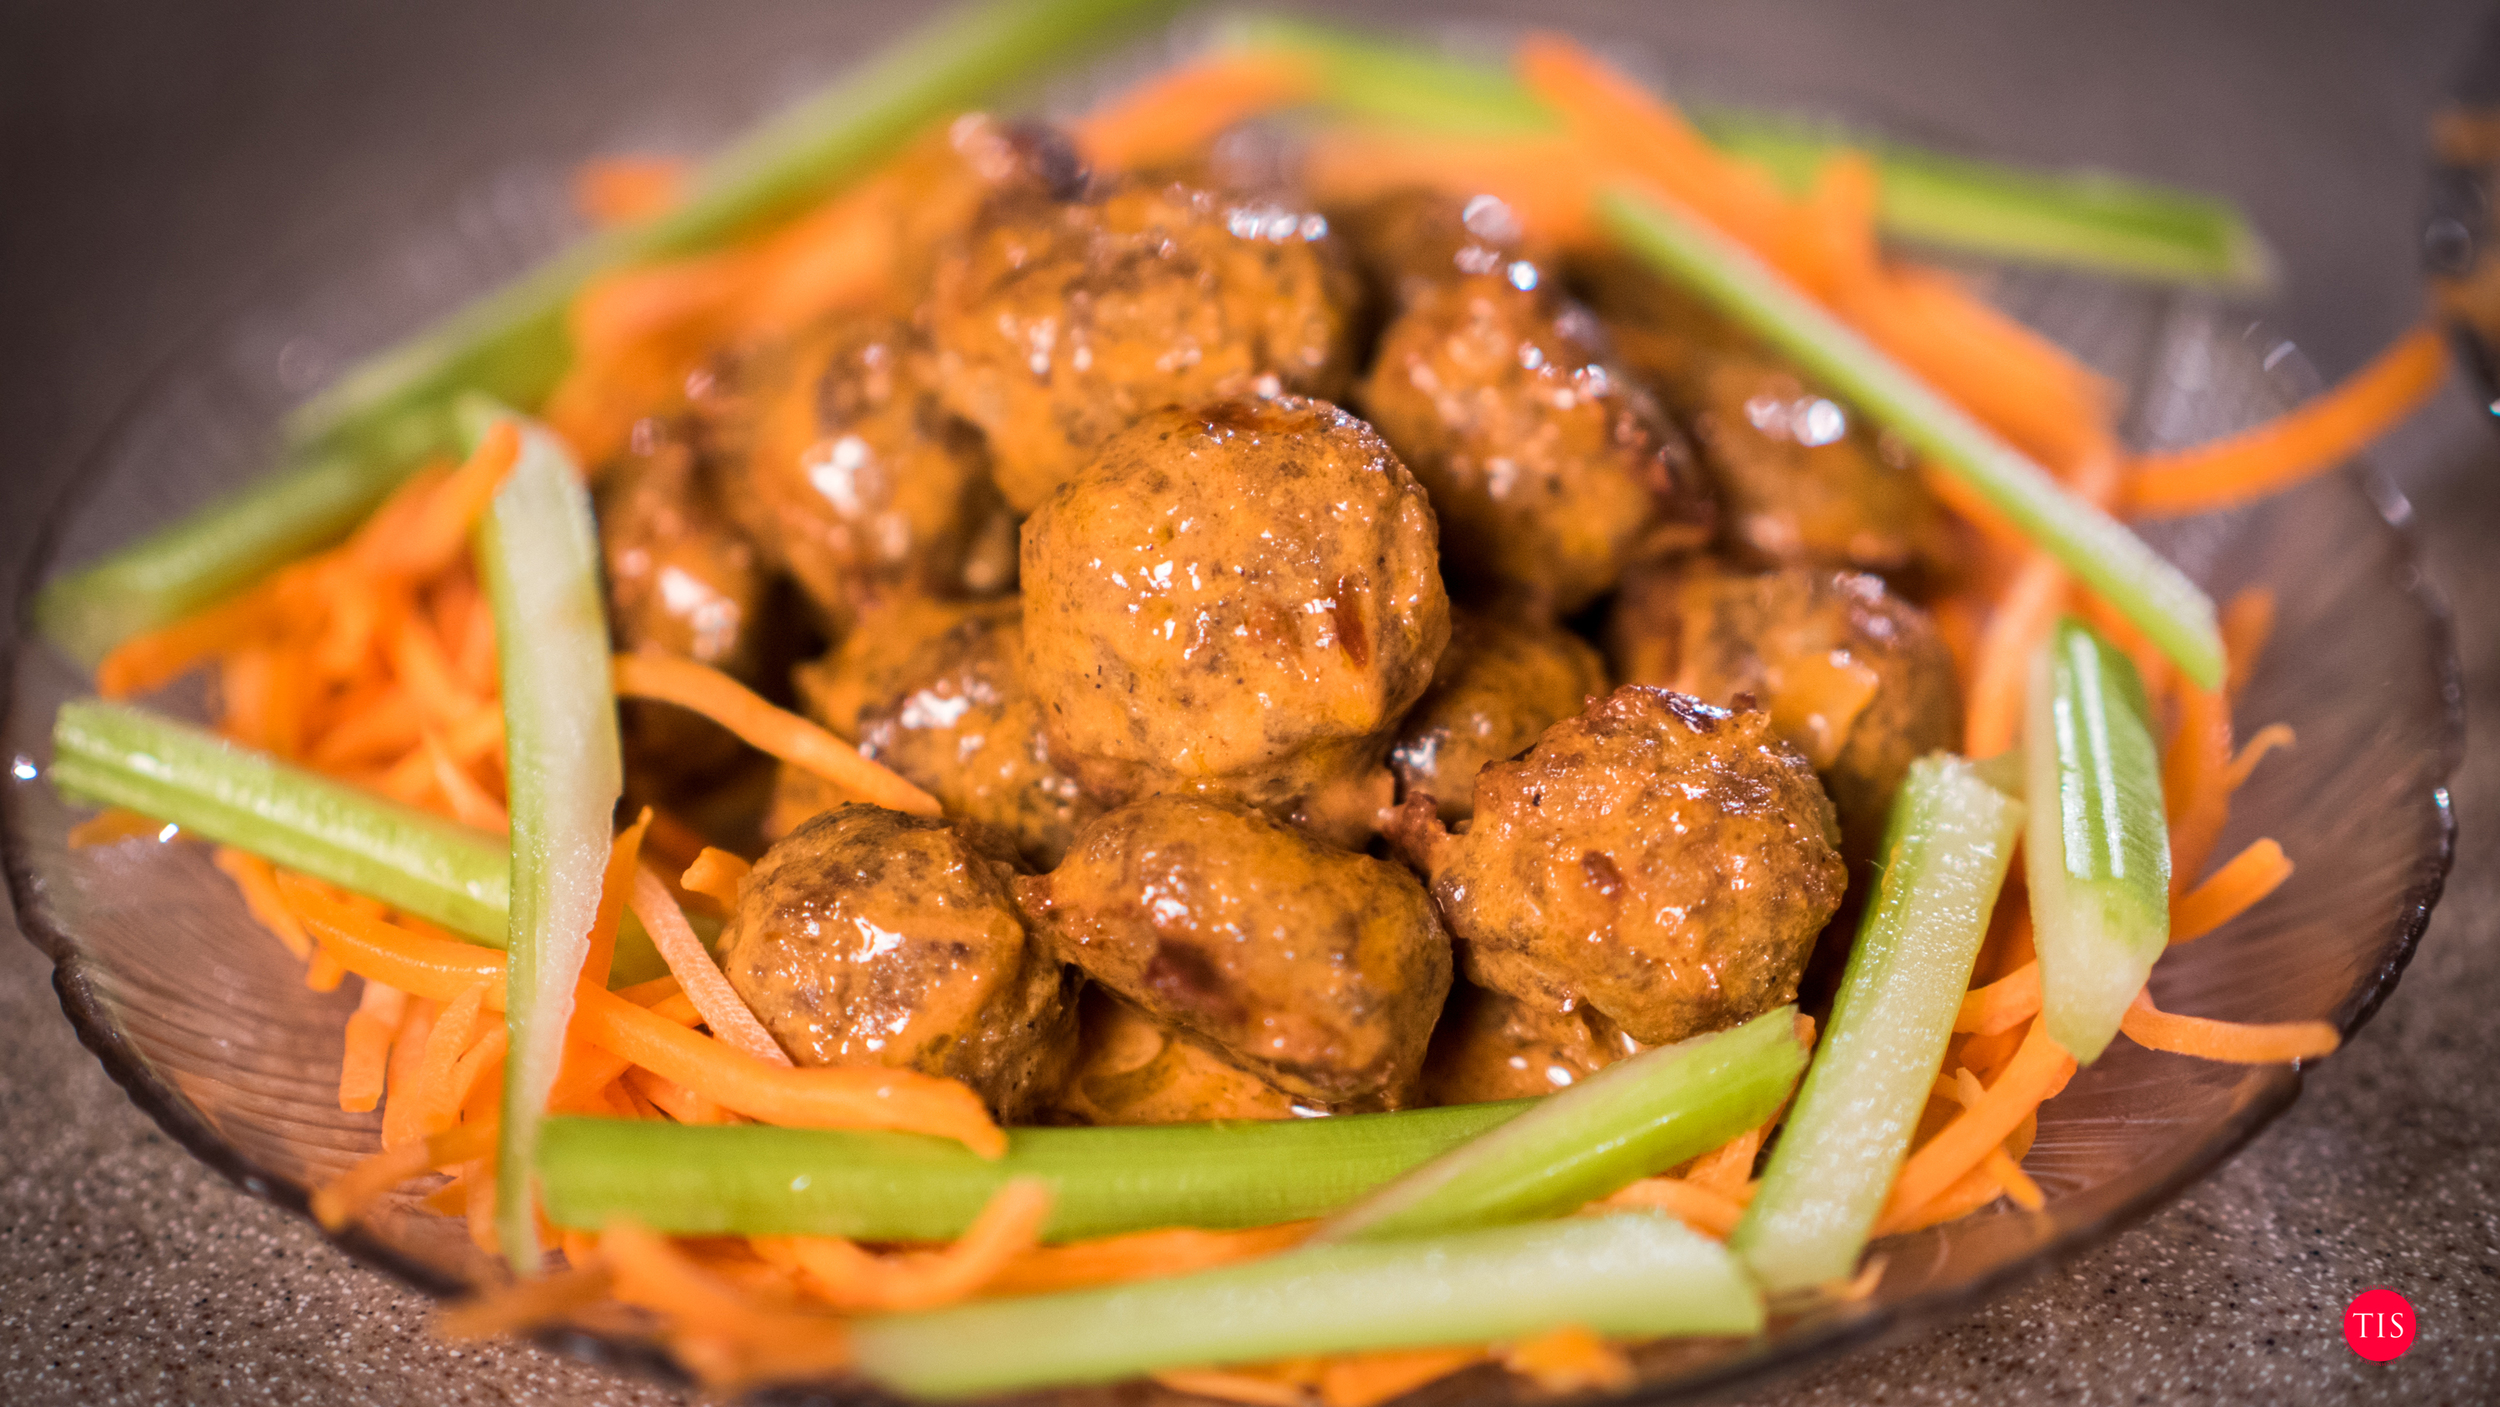 Jennifer Maring's Buffalo Chicken Meatball Recipe... Perfect for NYE or a Superbowl Party.